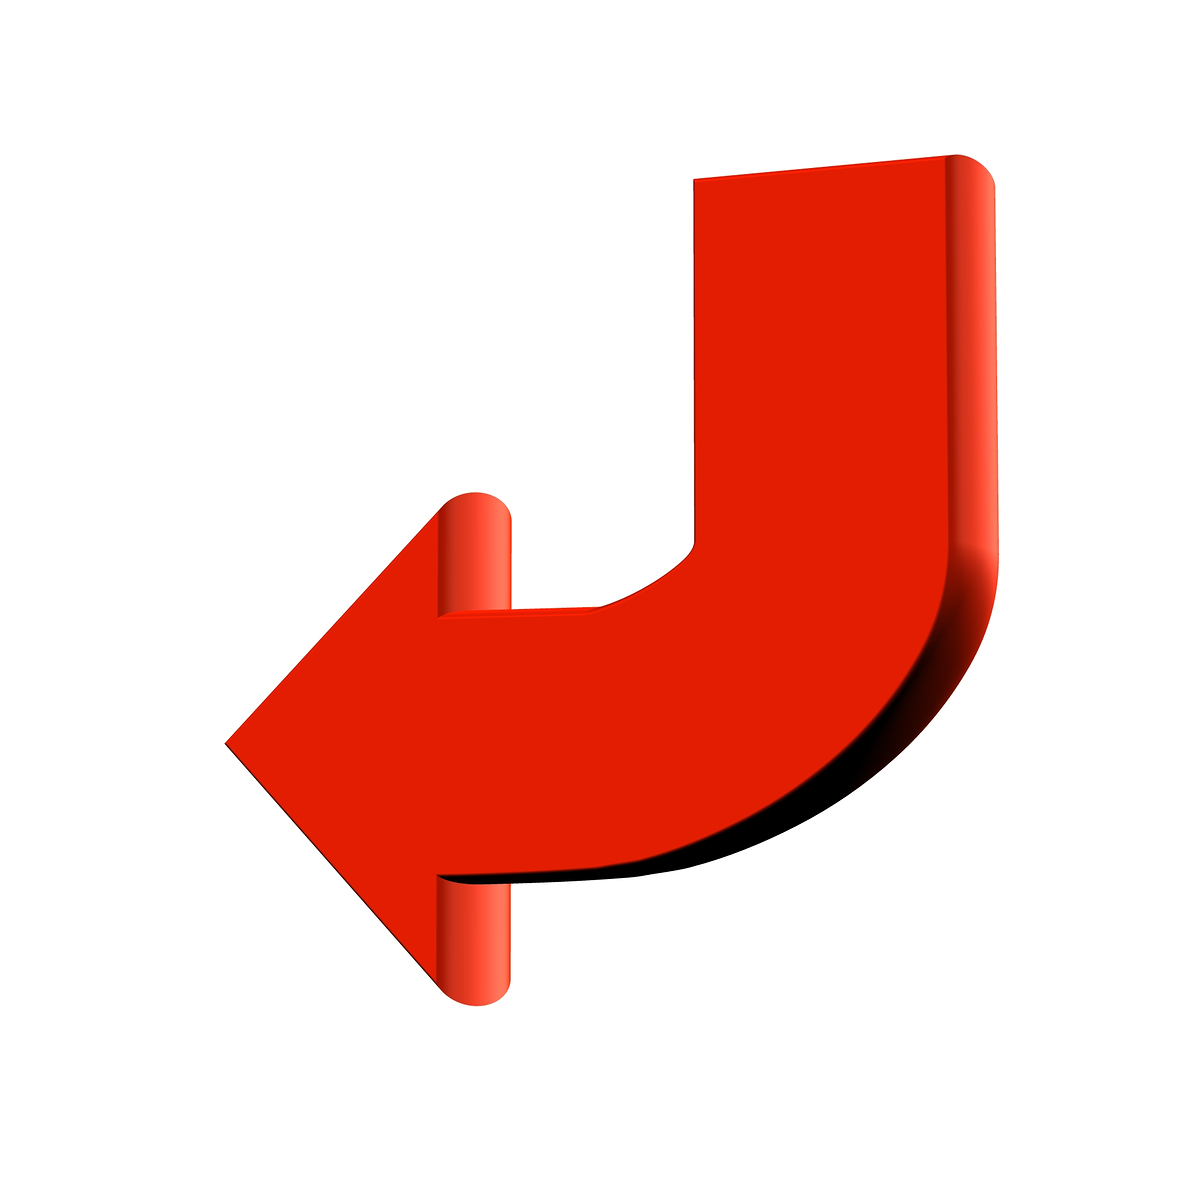 Red curved arrow left clipart clipart Red curved arrow left clipart - ClipartFest clipart